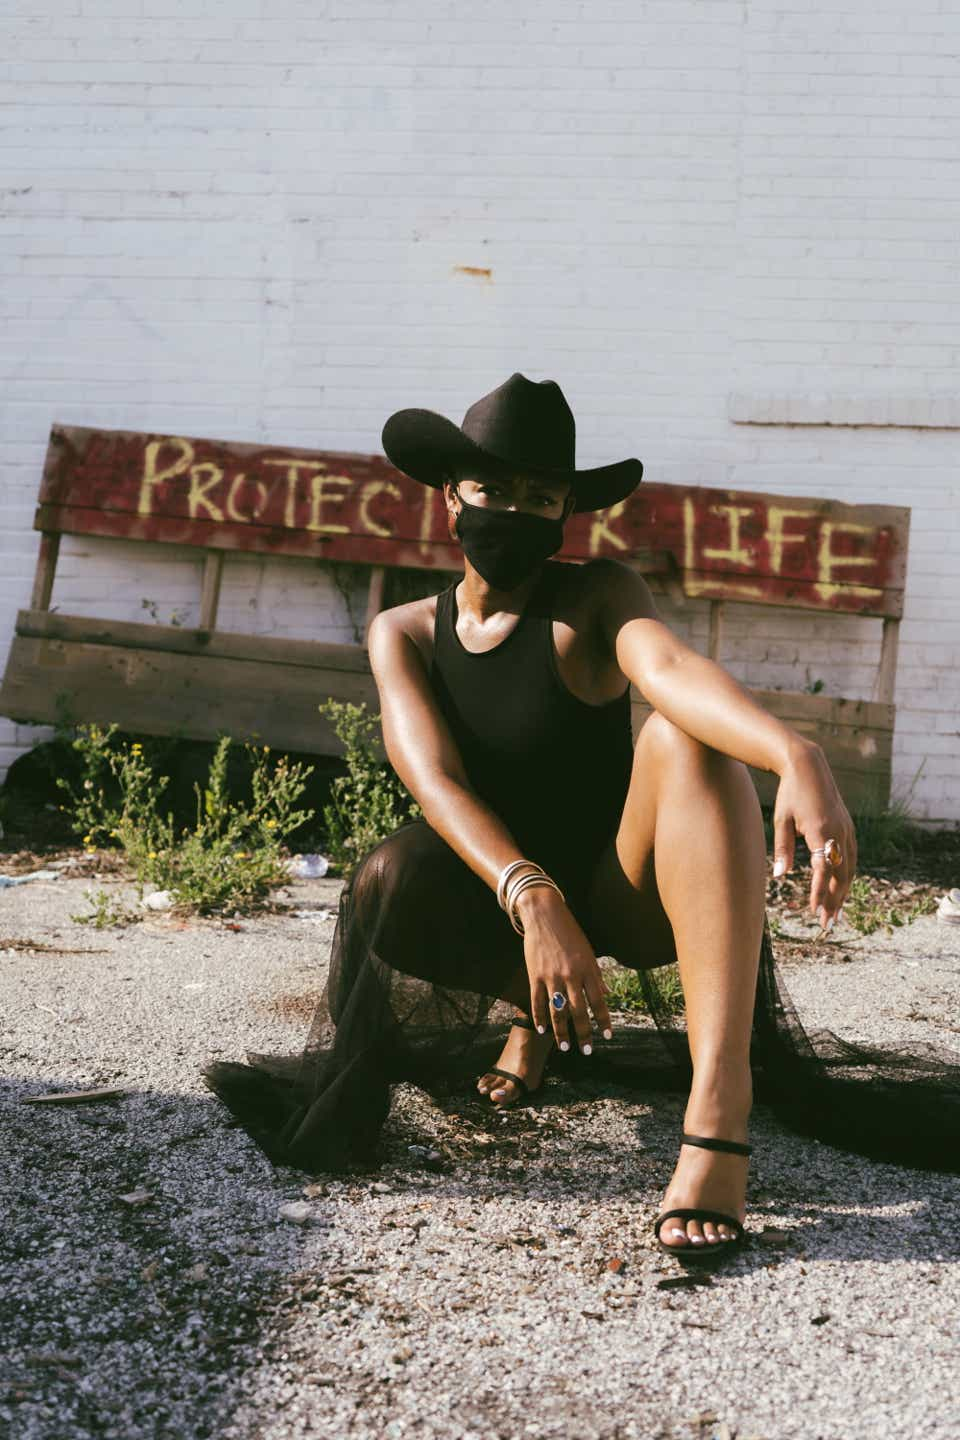 Jasmine is posing on the ground, showing off her black strappy sandals. She is wearing a black cowboy hat, a black mask, and a black dress.